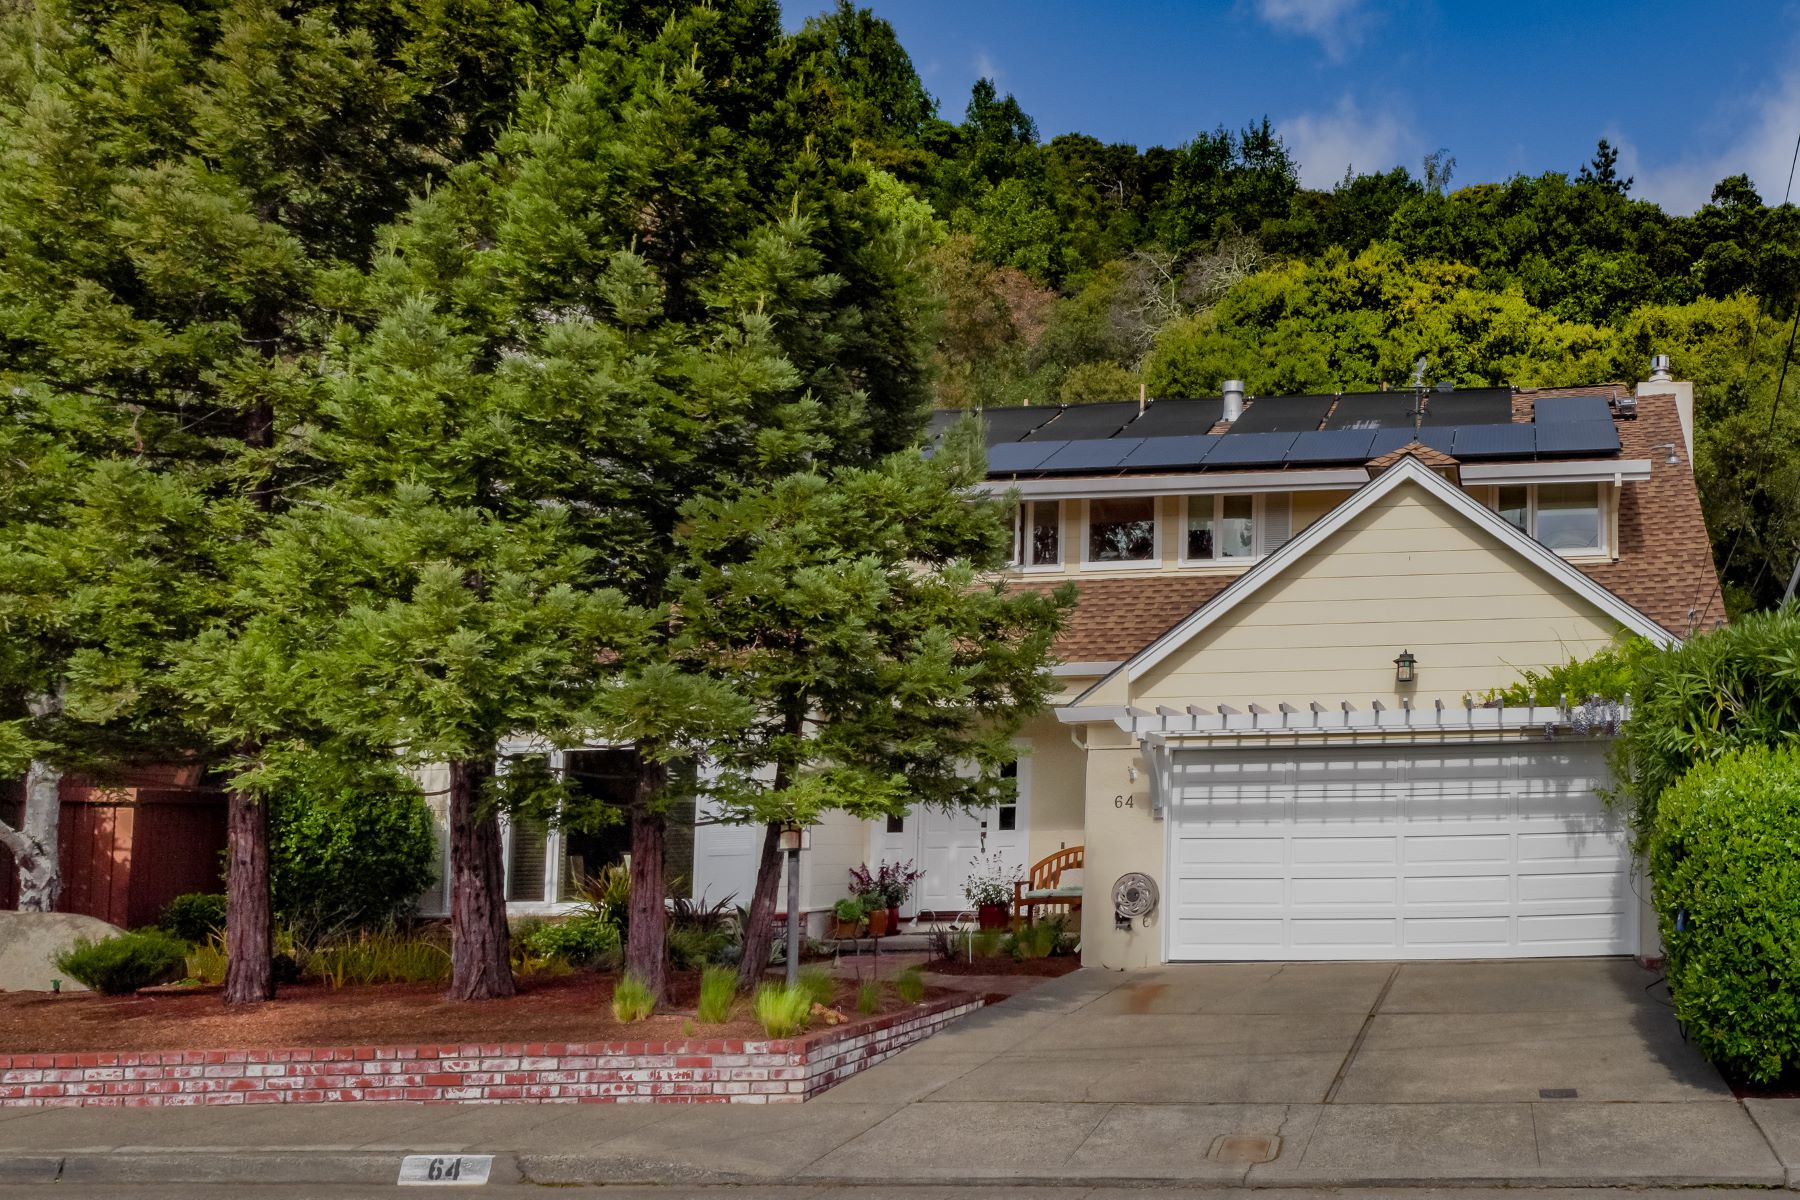 Exquisite Remodeled Oasis 64 Dominican, San Rafael, California 94901 Estados Unidos